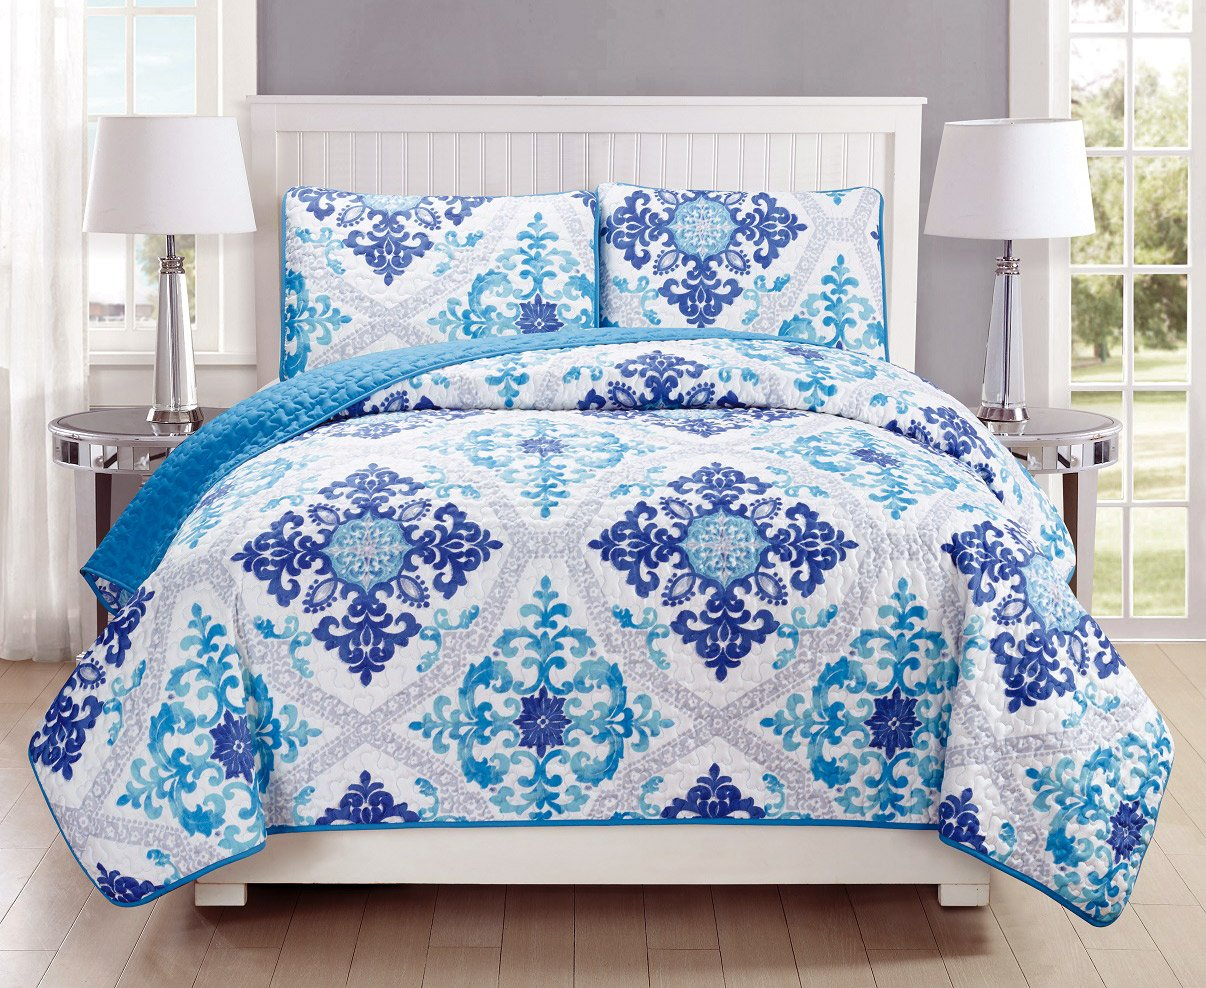 2-Piece Fine printed Quilt Set Reversible Bedspread Coverlet TWIN SIZE Bed Cover (Turquoise, Blue, White, Grey, Navy) by Grand Linen